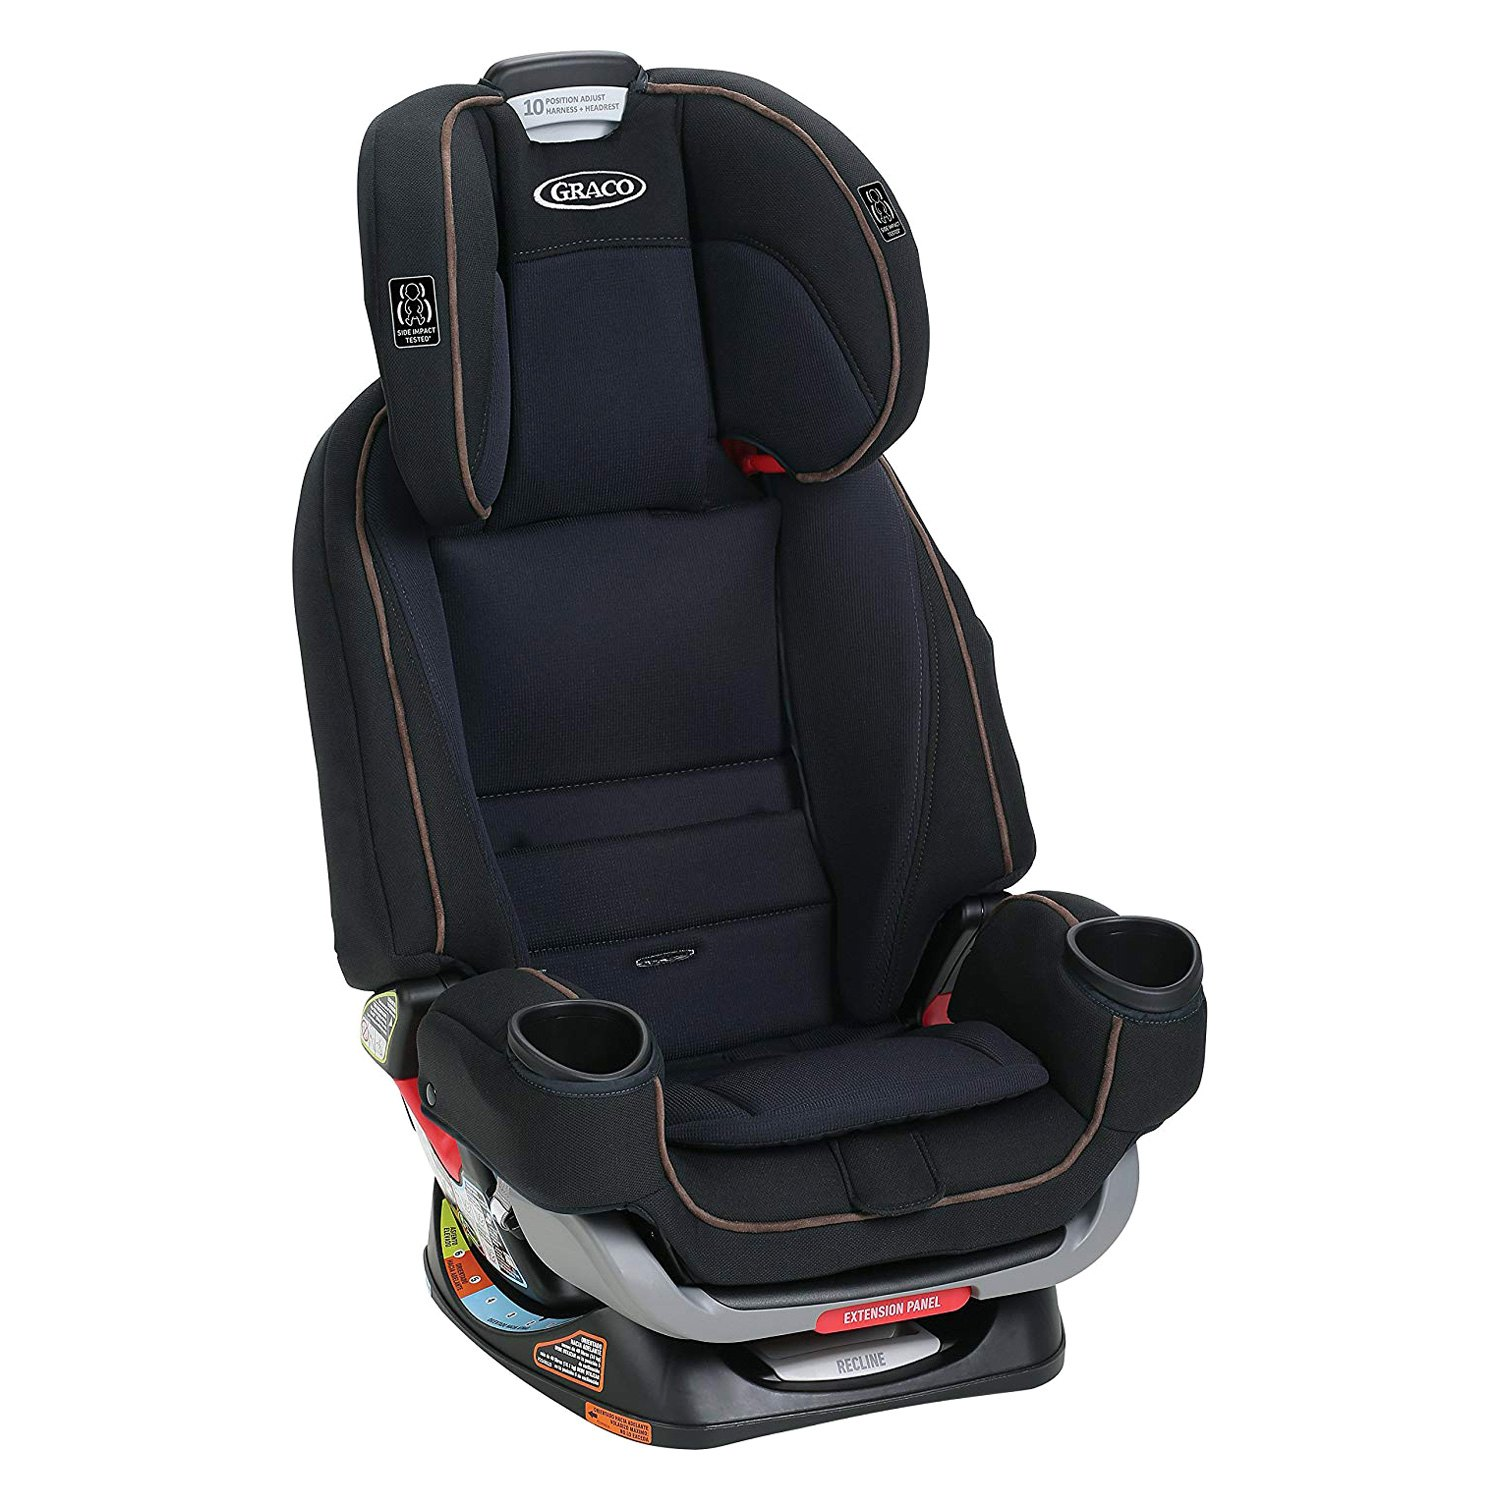 Graco Baby Forever Car Seat